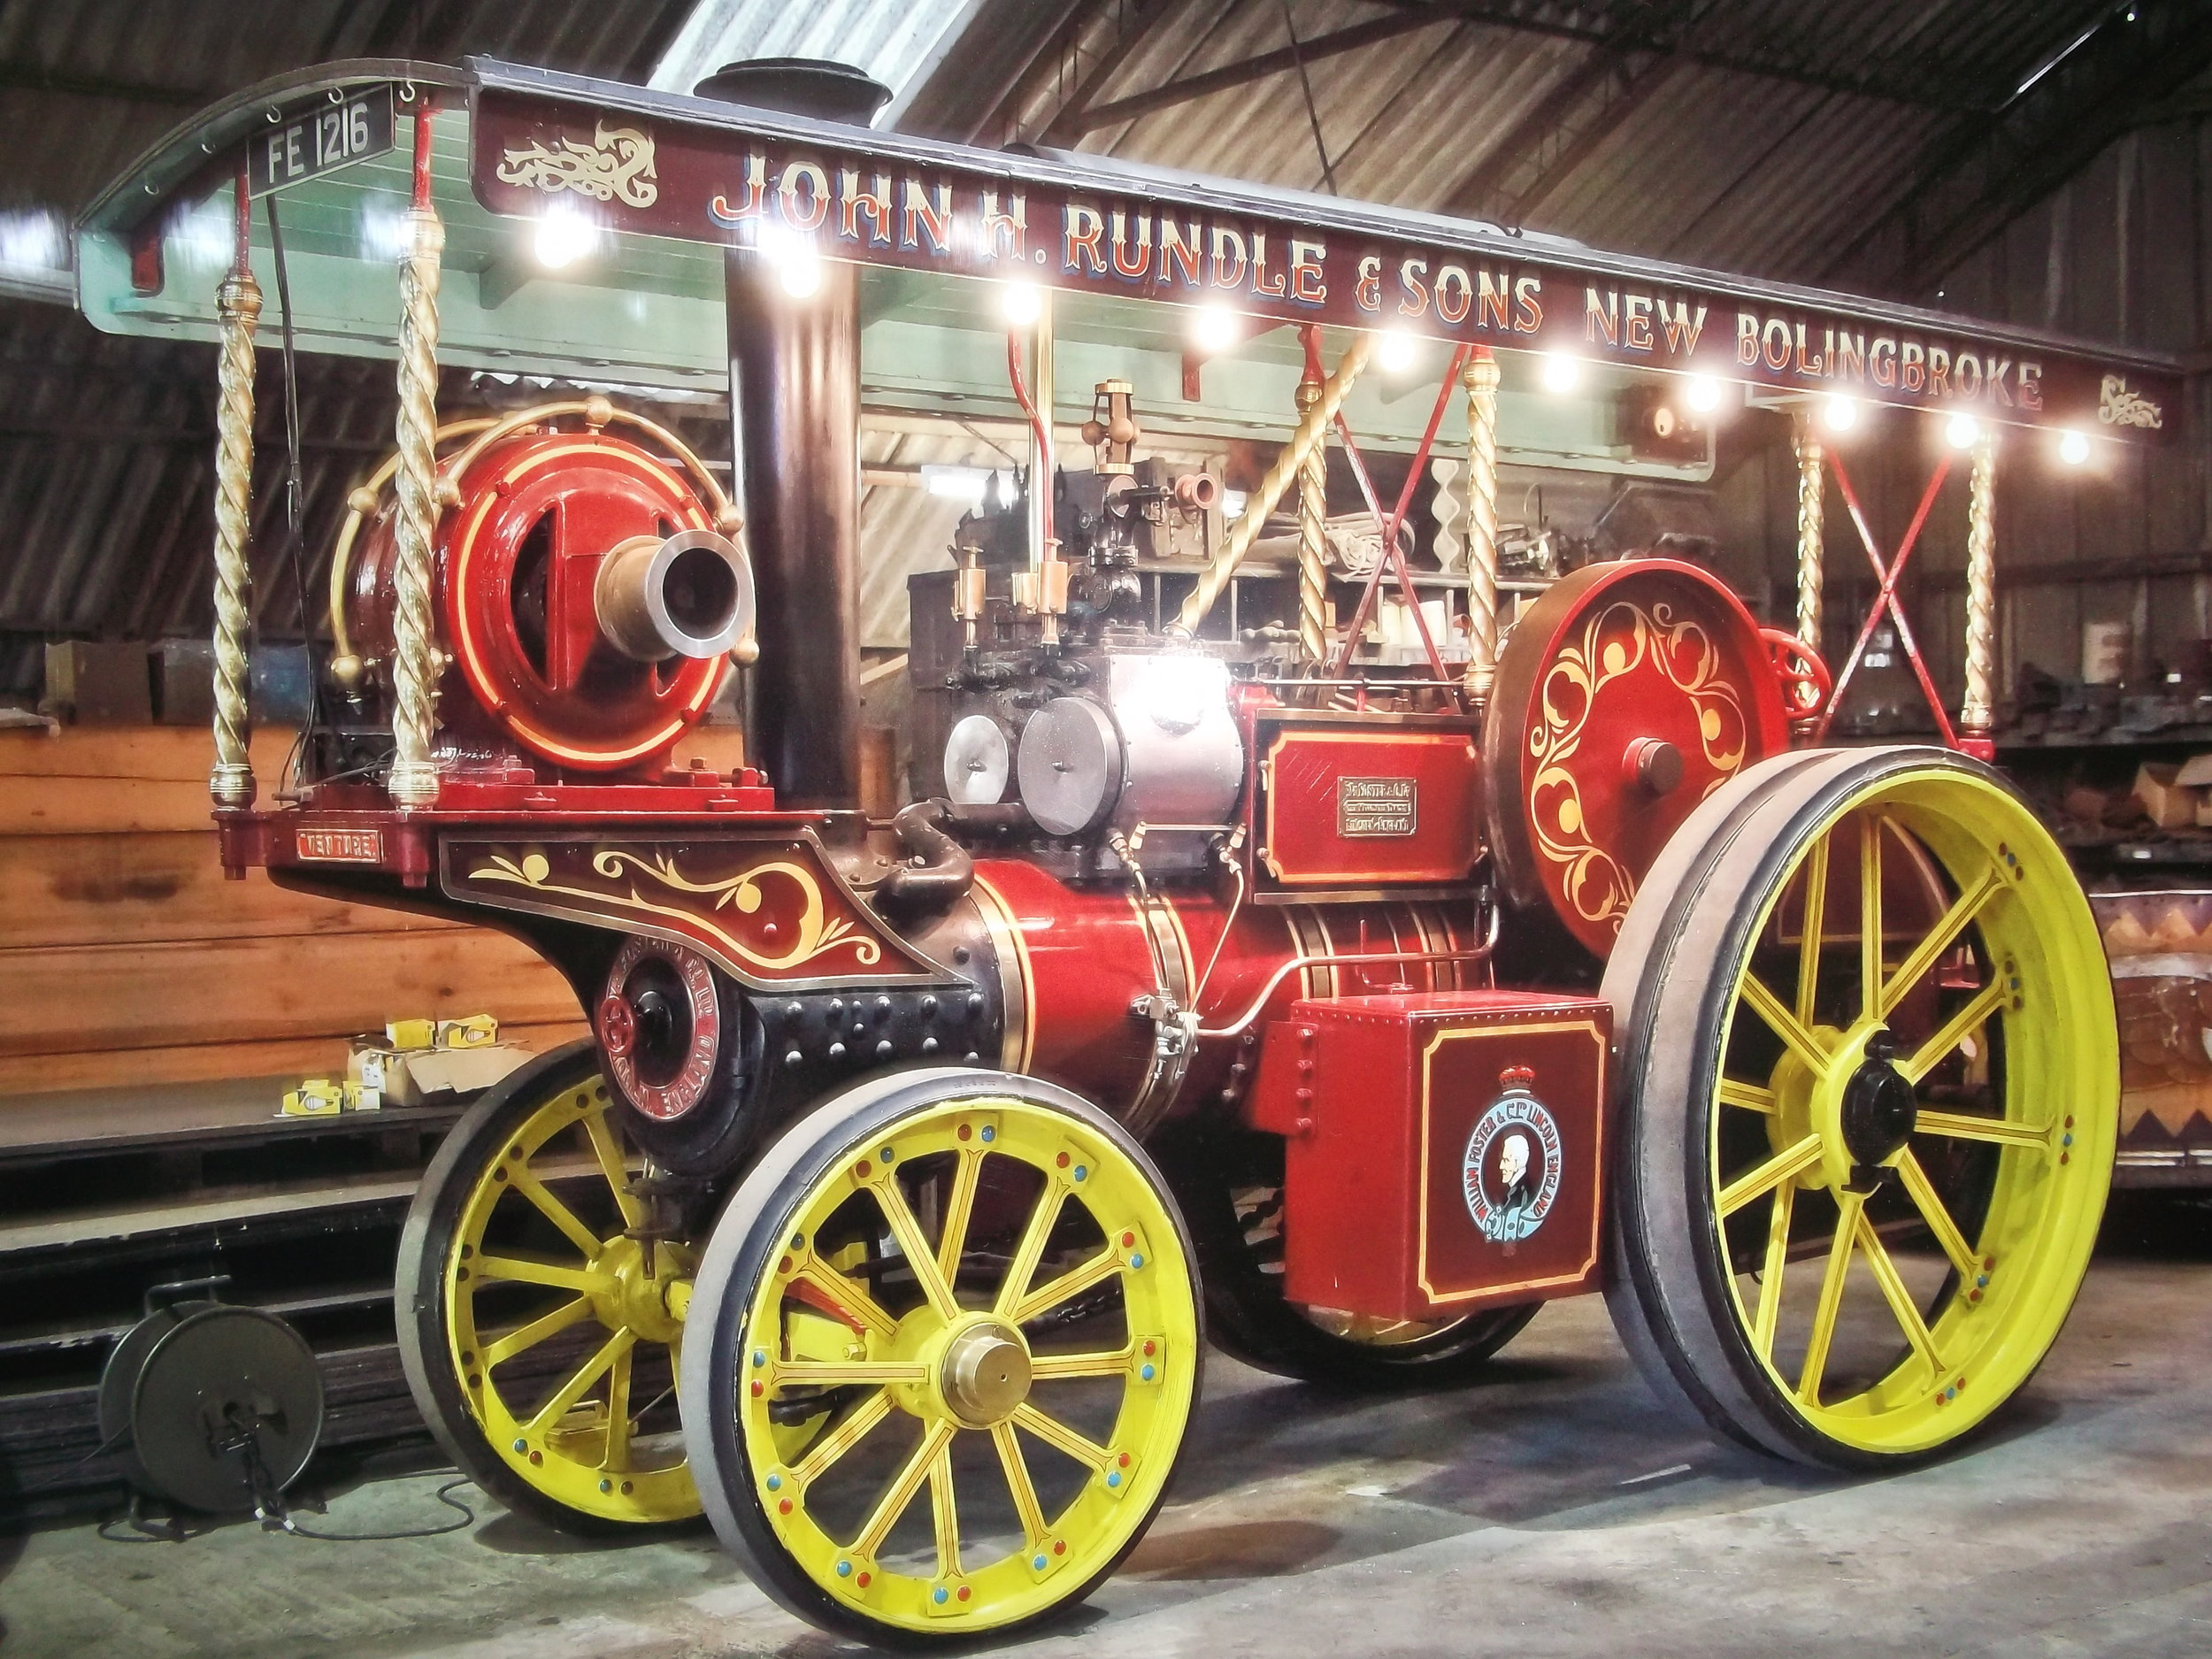 Steam Engine owned by Rundles of New Bollingbroke, lincs